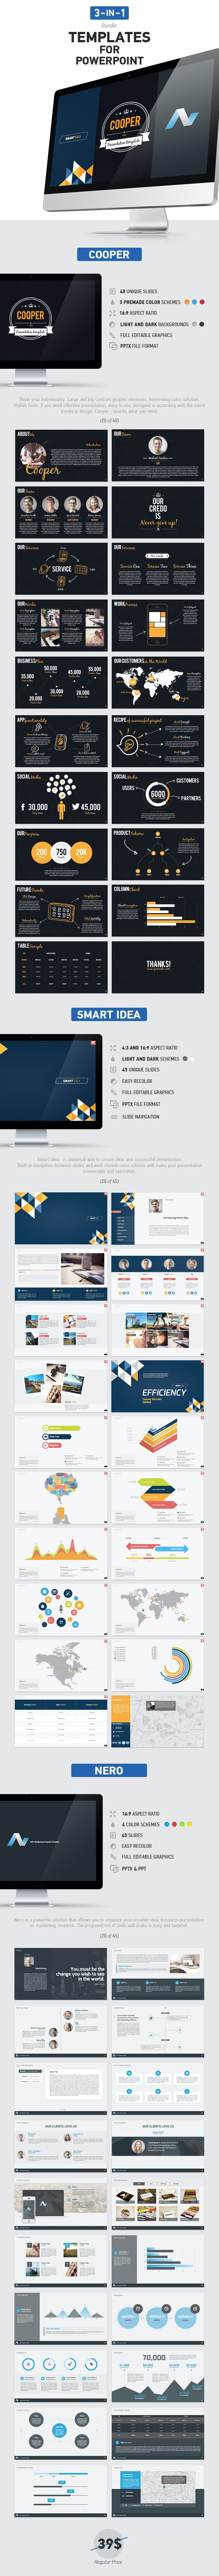 3 in 1 PowerPoint Bundle - Business PowerPoint Templates